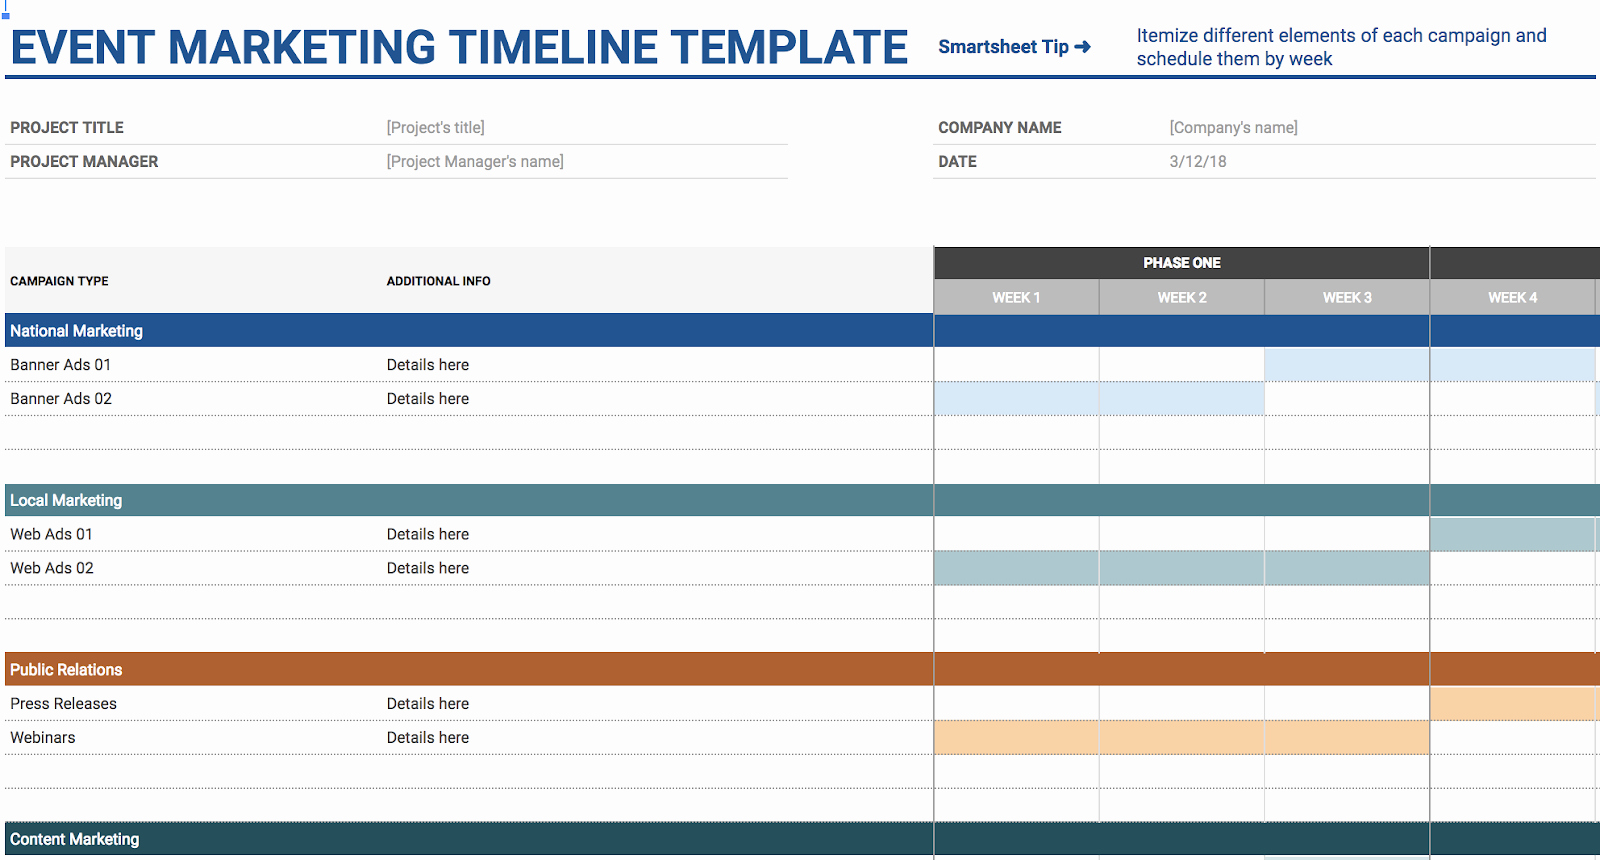 Marketing Timeline Template Excel Elegant 11 Of the Best Free Google Sheets Templates for 2019